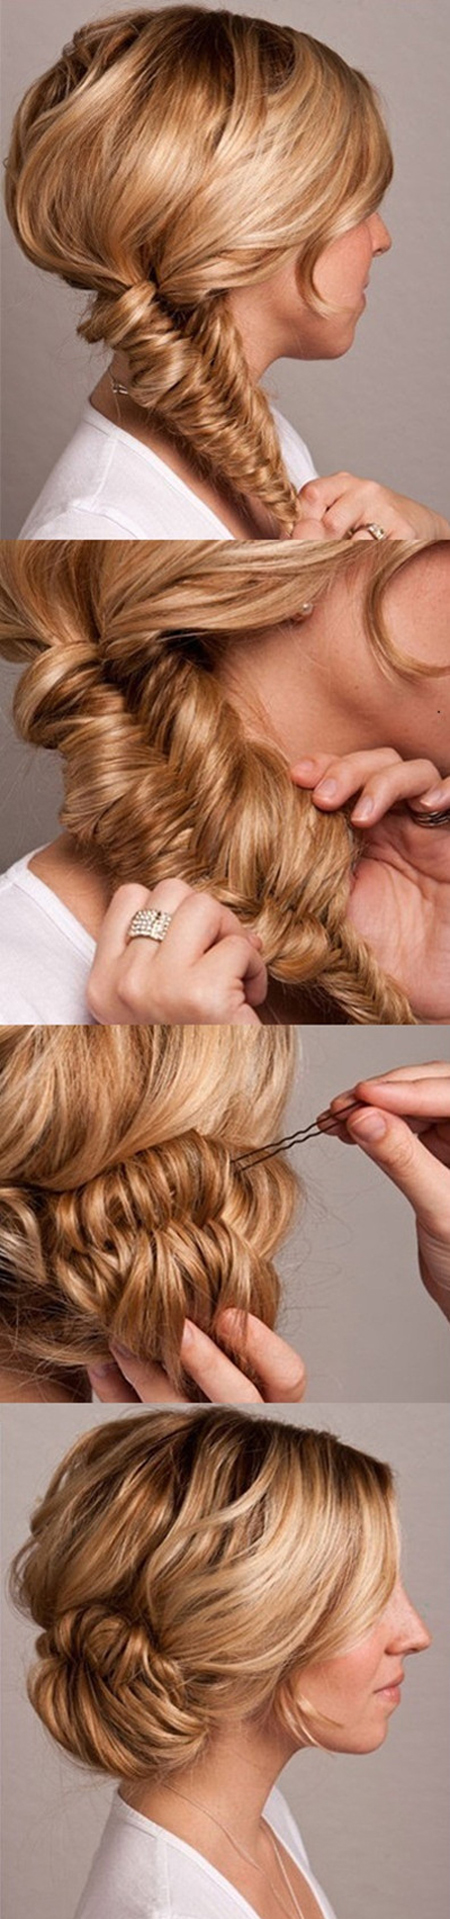 19 Great Tutorials for Perfect Hairstyles (17)